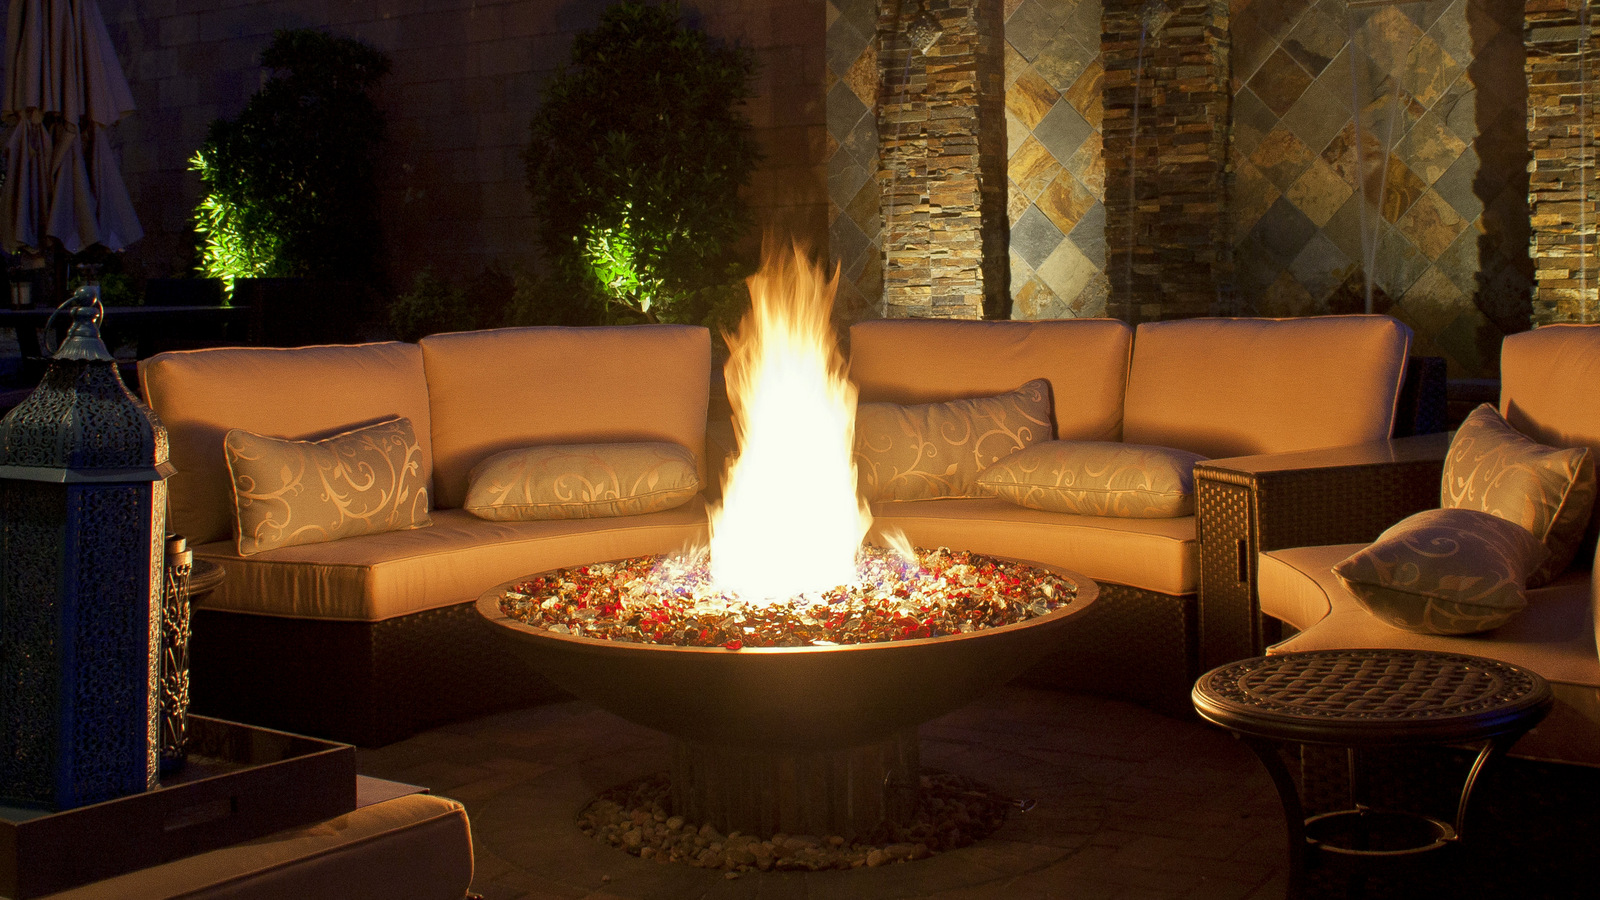 CHIP-N-DALE'S CUSTOM LANDSCAPING FIRE FEATURES 6